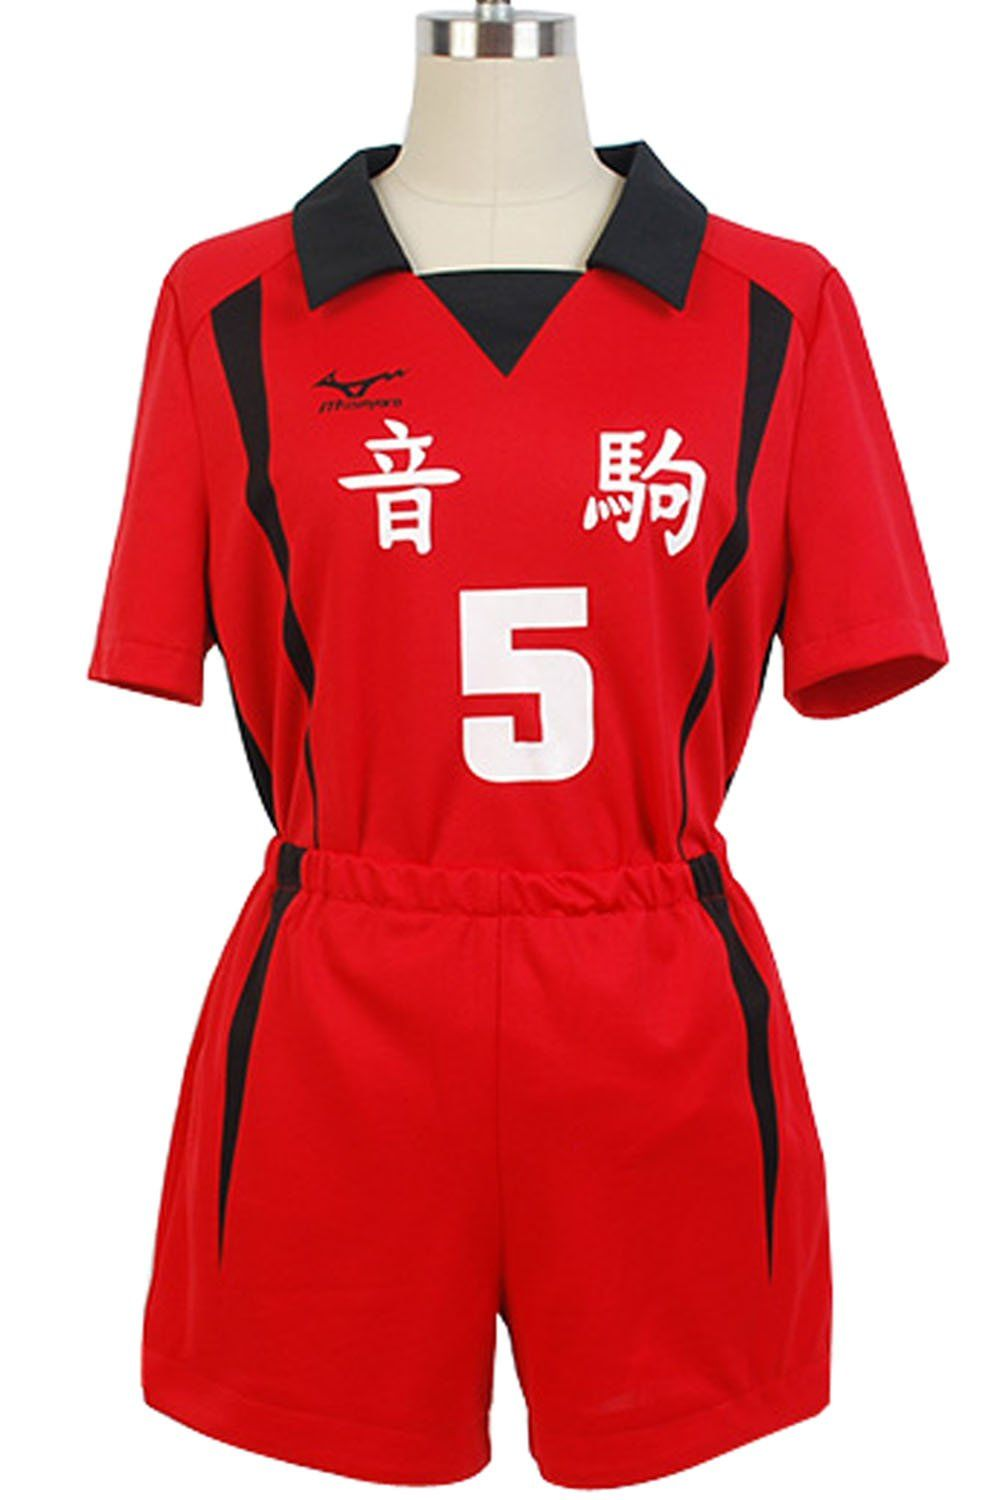 Goodcosplay Haikyuu Nekoma Uniform Kenma Kozume Volleyball Jersey 5 Cosplay Costume A Red And Black Outfits High School Football Shirts Mens Shorts Outfits